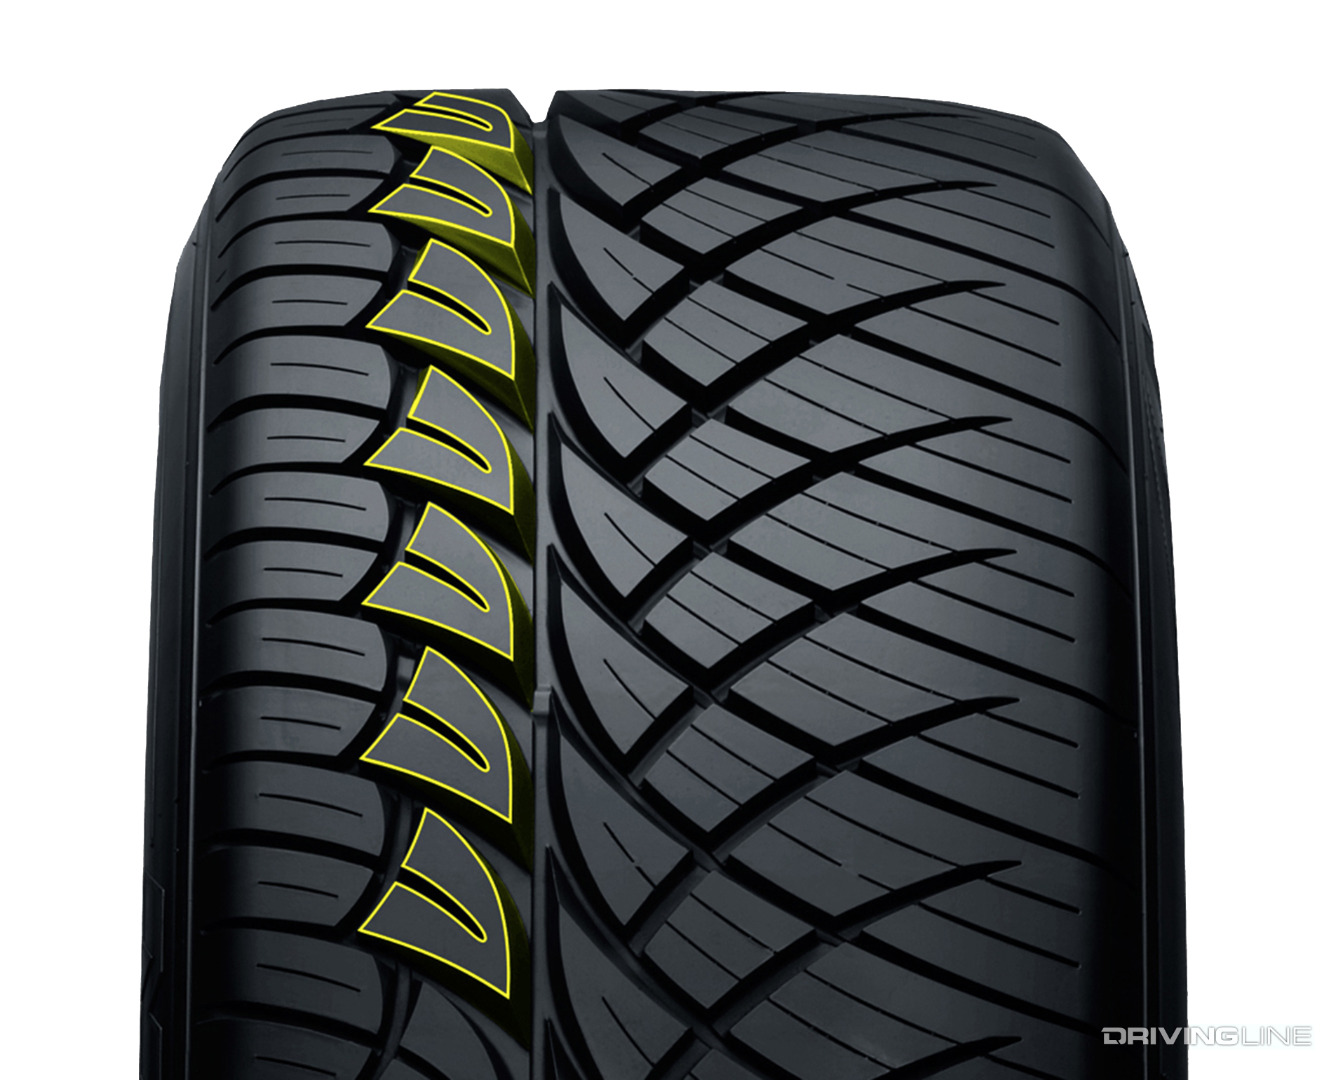 nitto tires with white lettering complaintsblog diesel truck owners choose nitto 420s to dominate the 951